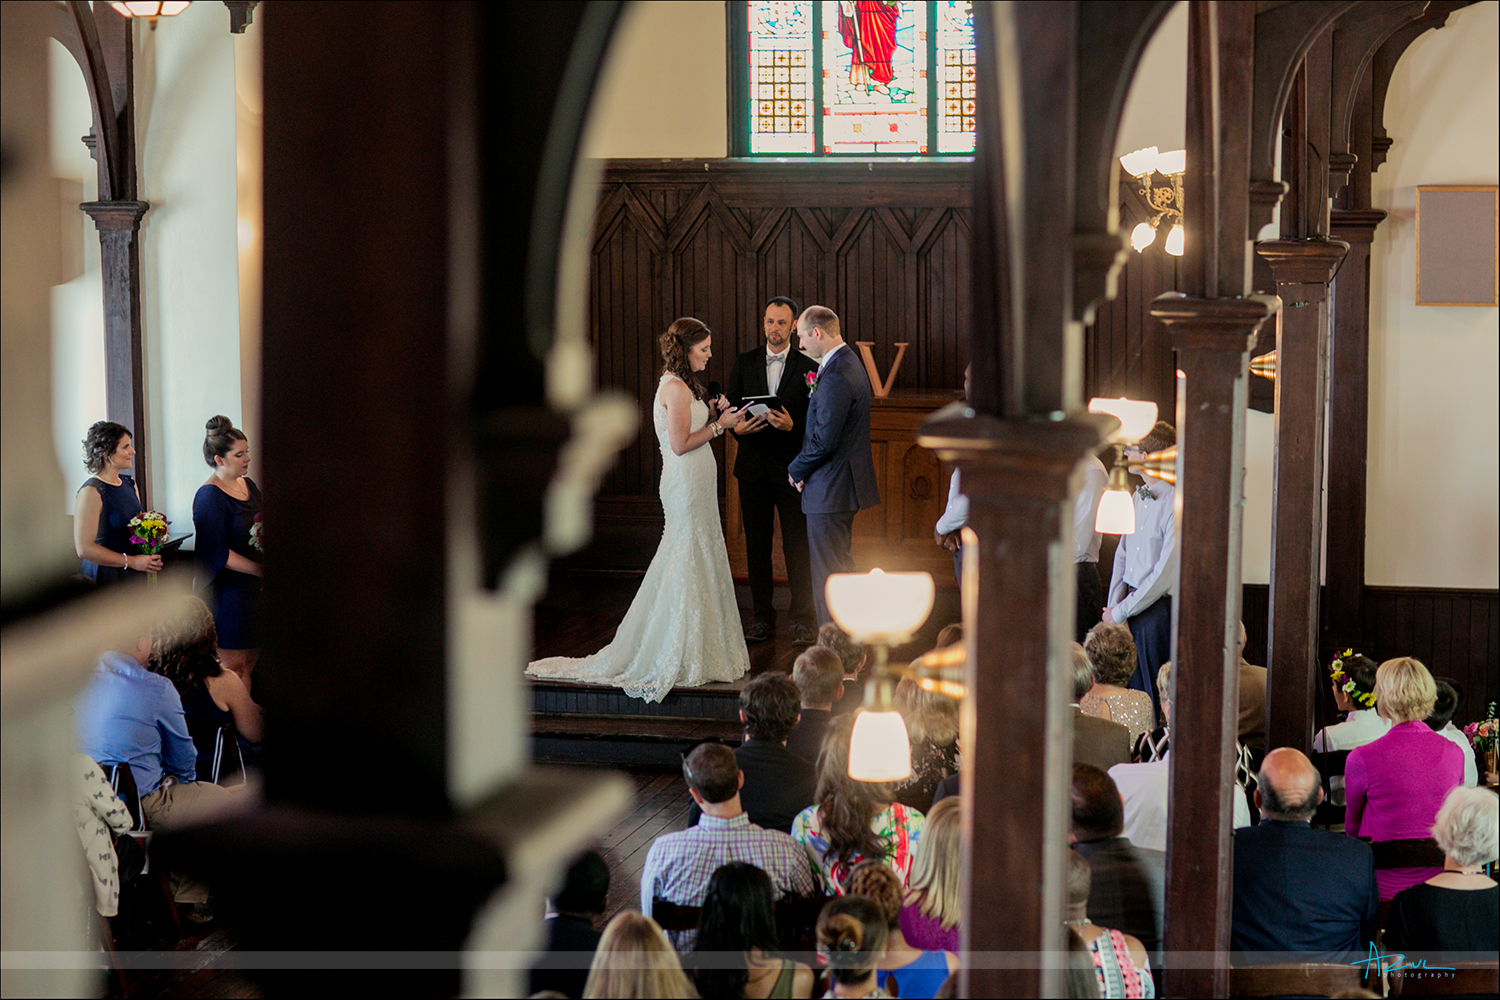 Beautiful vows spoken by the bride at her wedding in All Saints Chapel in Raleigh, NC